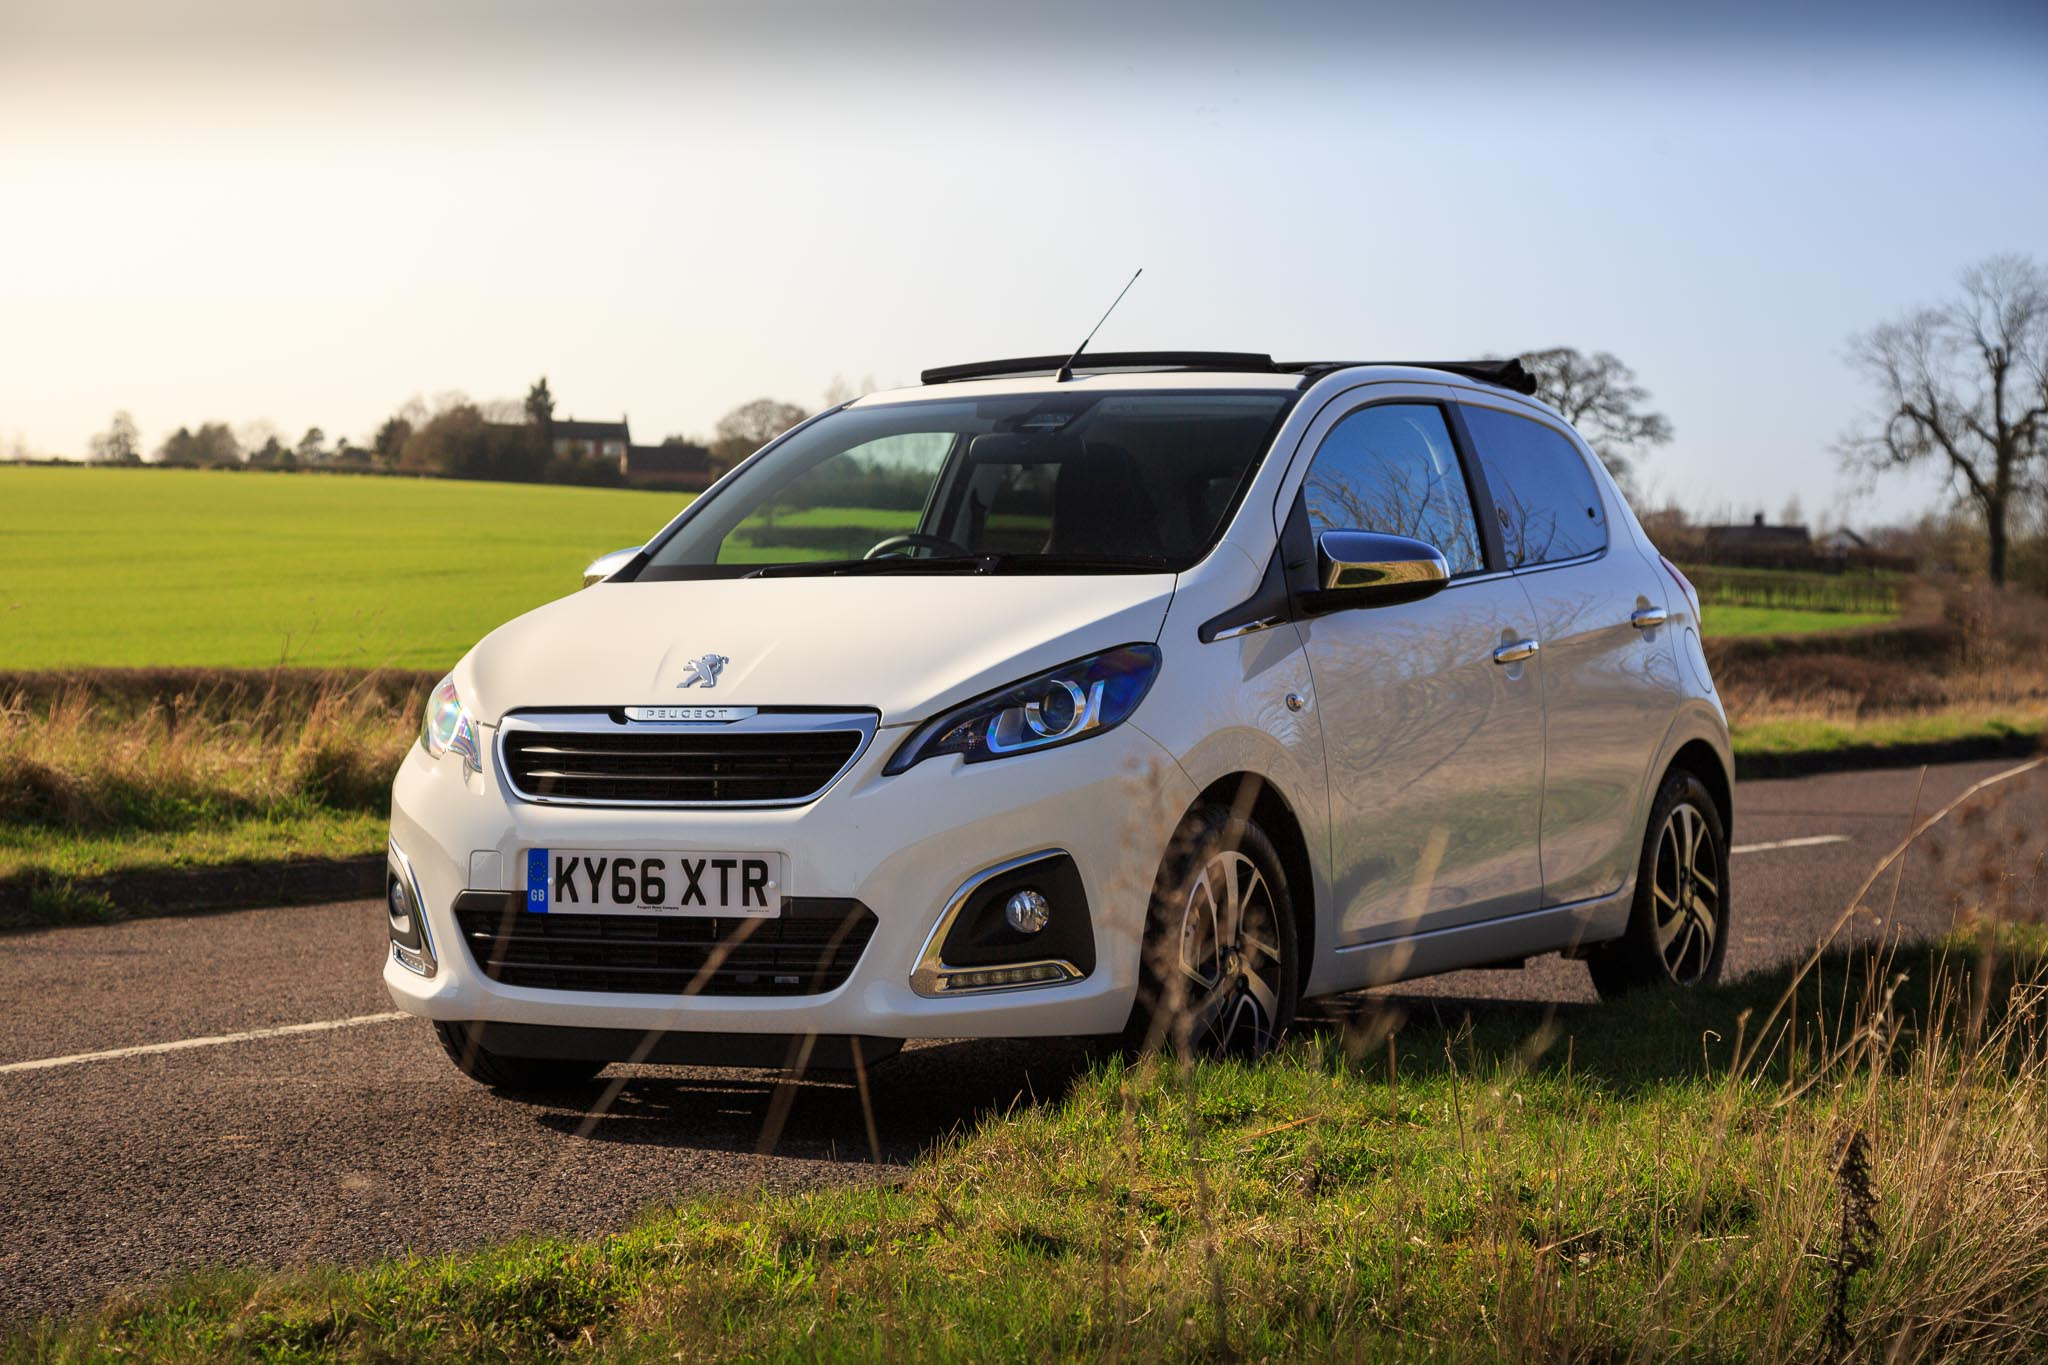 Toyota Aigo 2017 >> 2016 Peugeot 108 Allure TOP! Review | A Fine City Companion